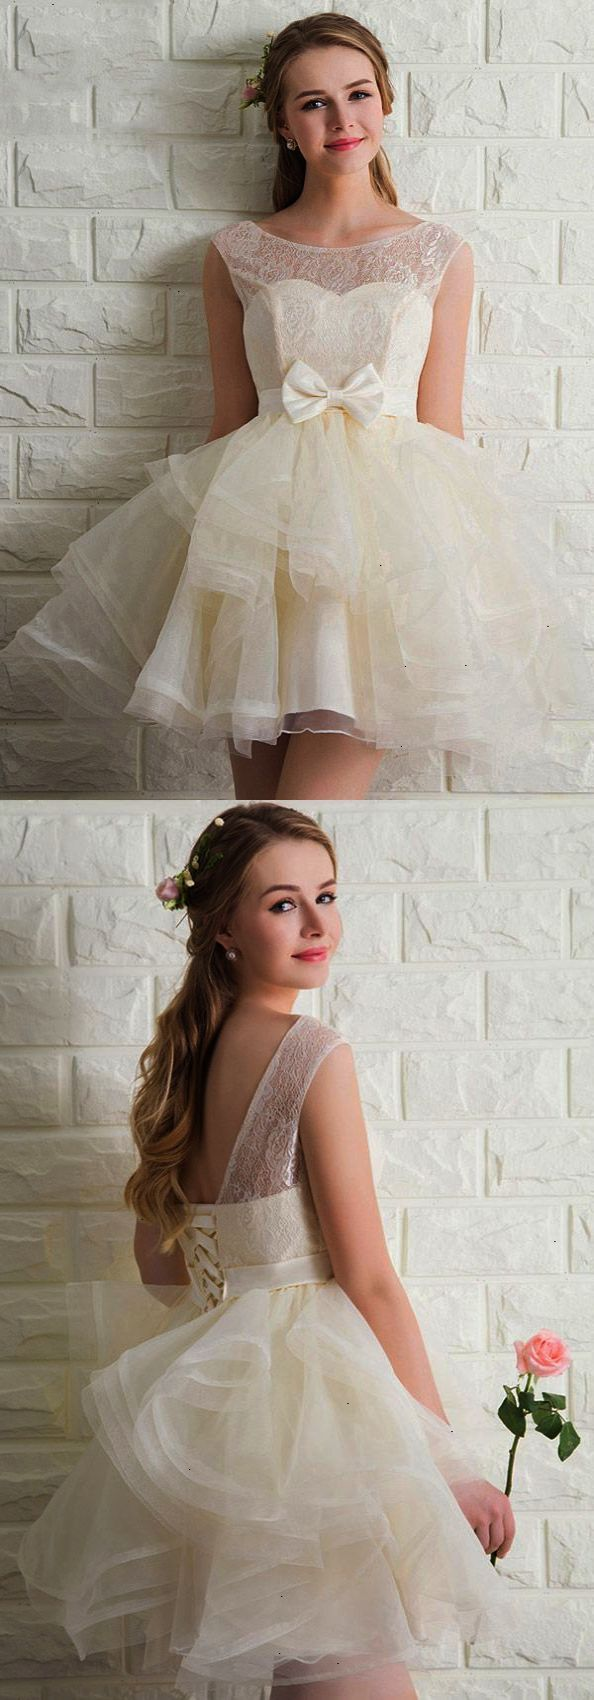 Short prom dresses lace cocktail dresses tulle junior prom